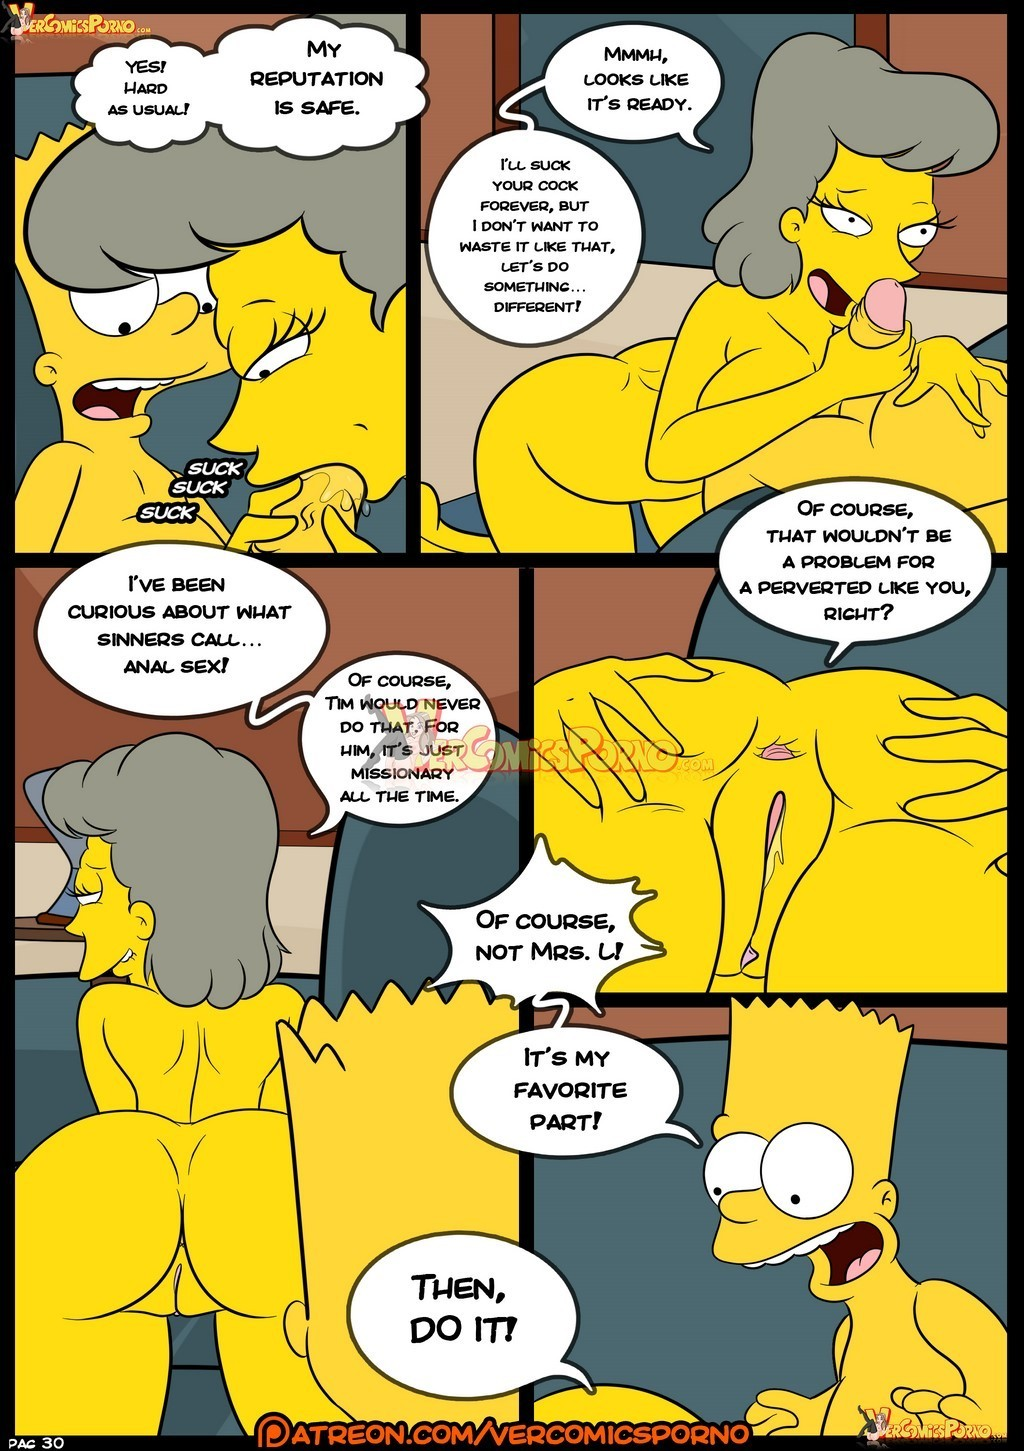 31 - The Simpsons. Part 8.